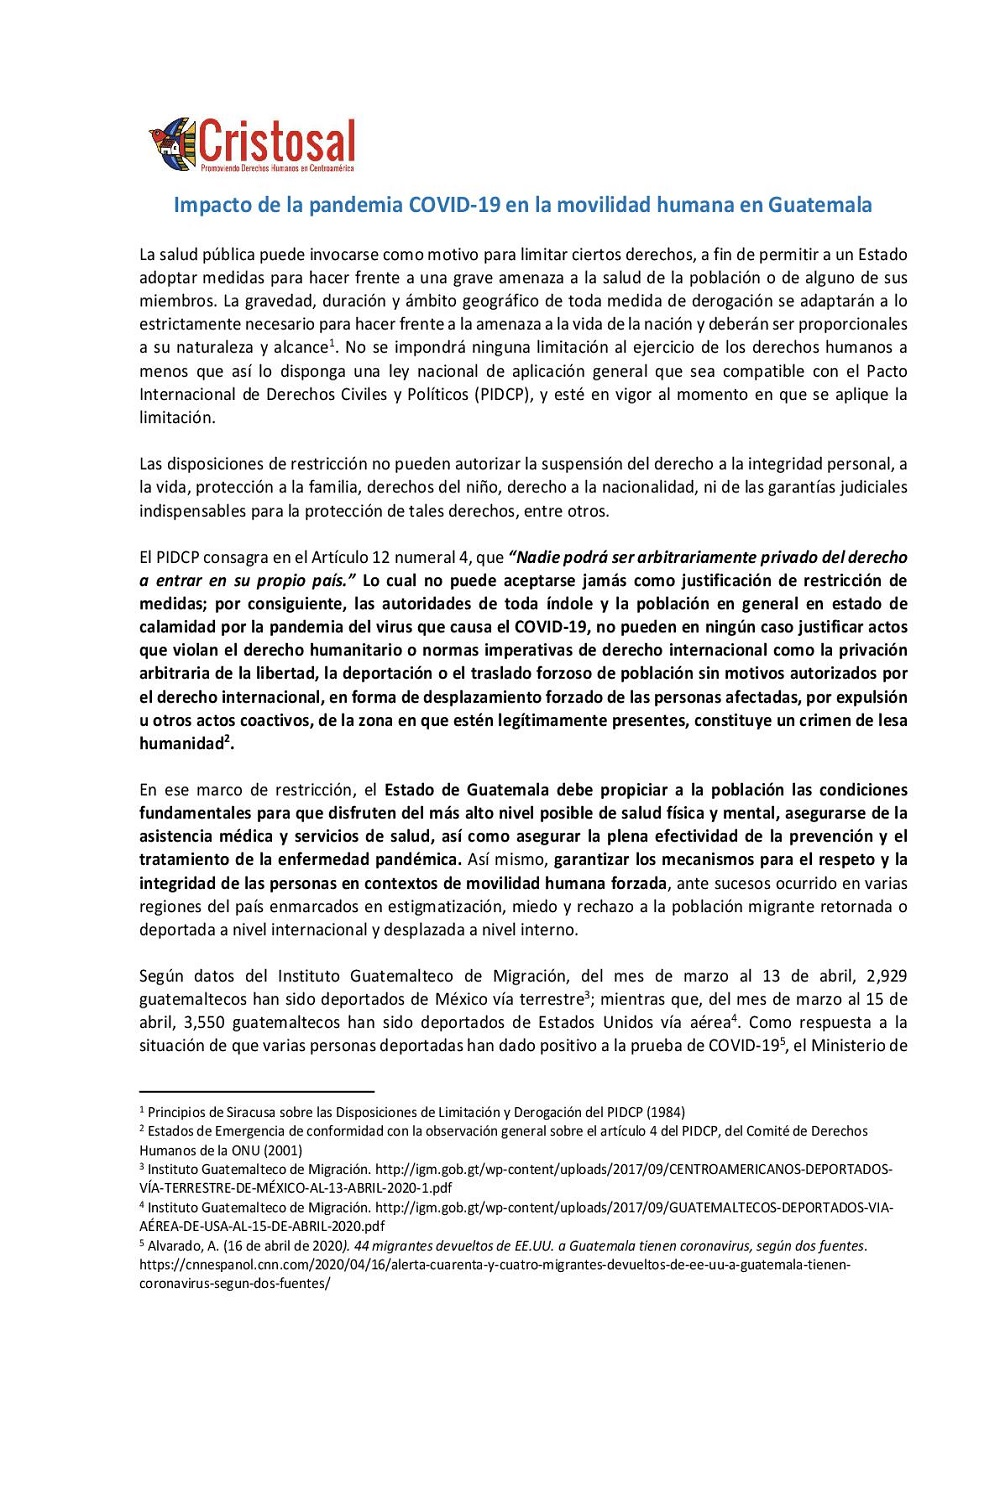 Impact of the COVID-19 pandemic on human mobility in Guatemala (Spanish)